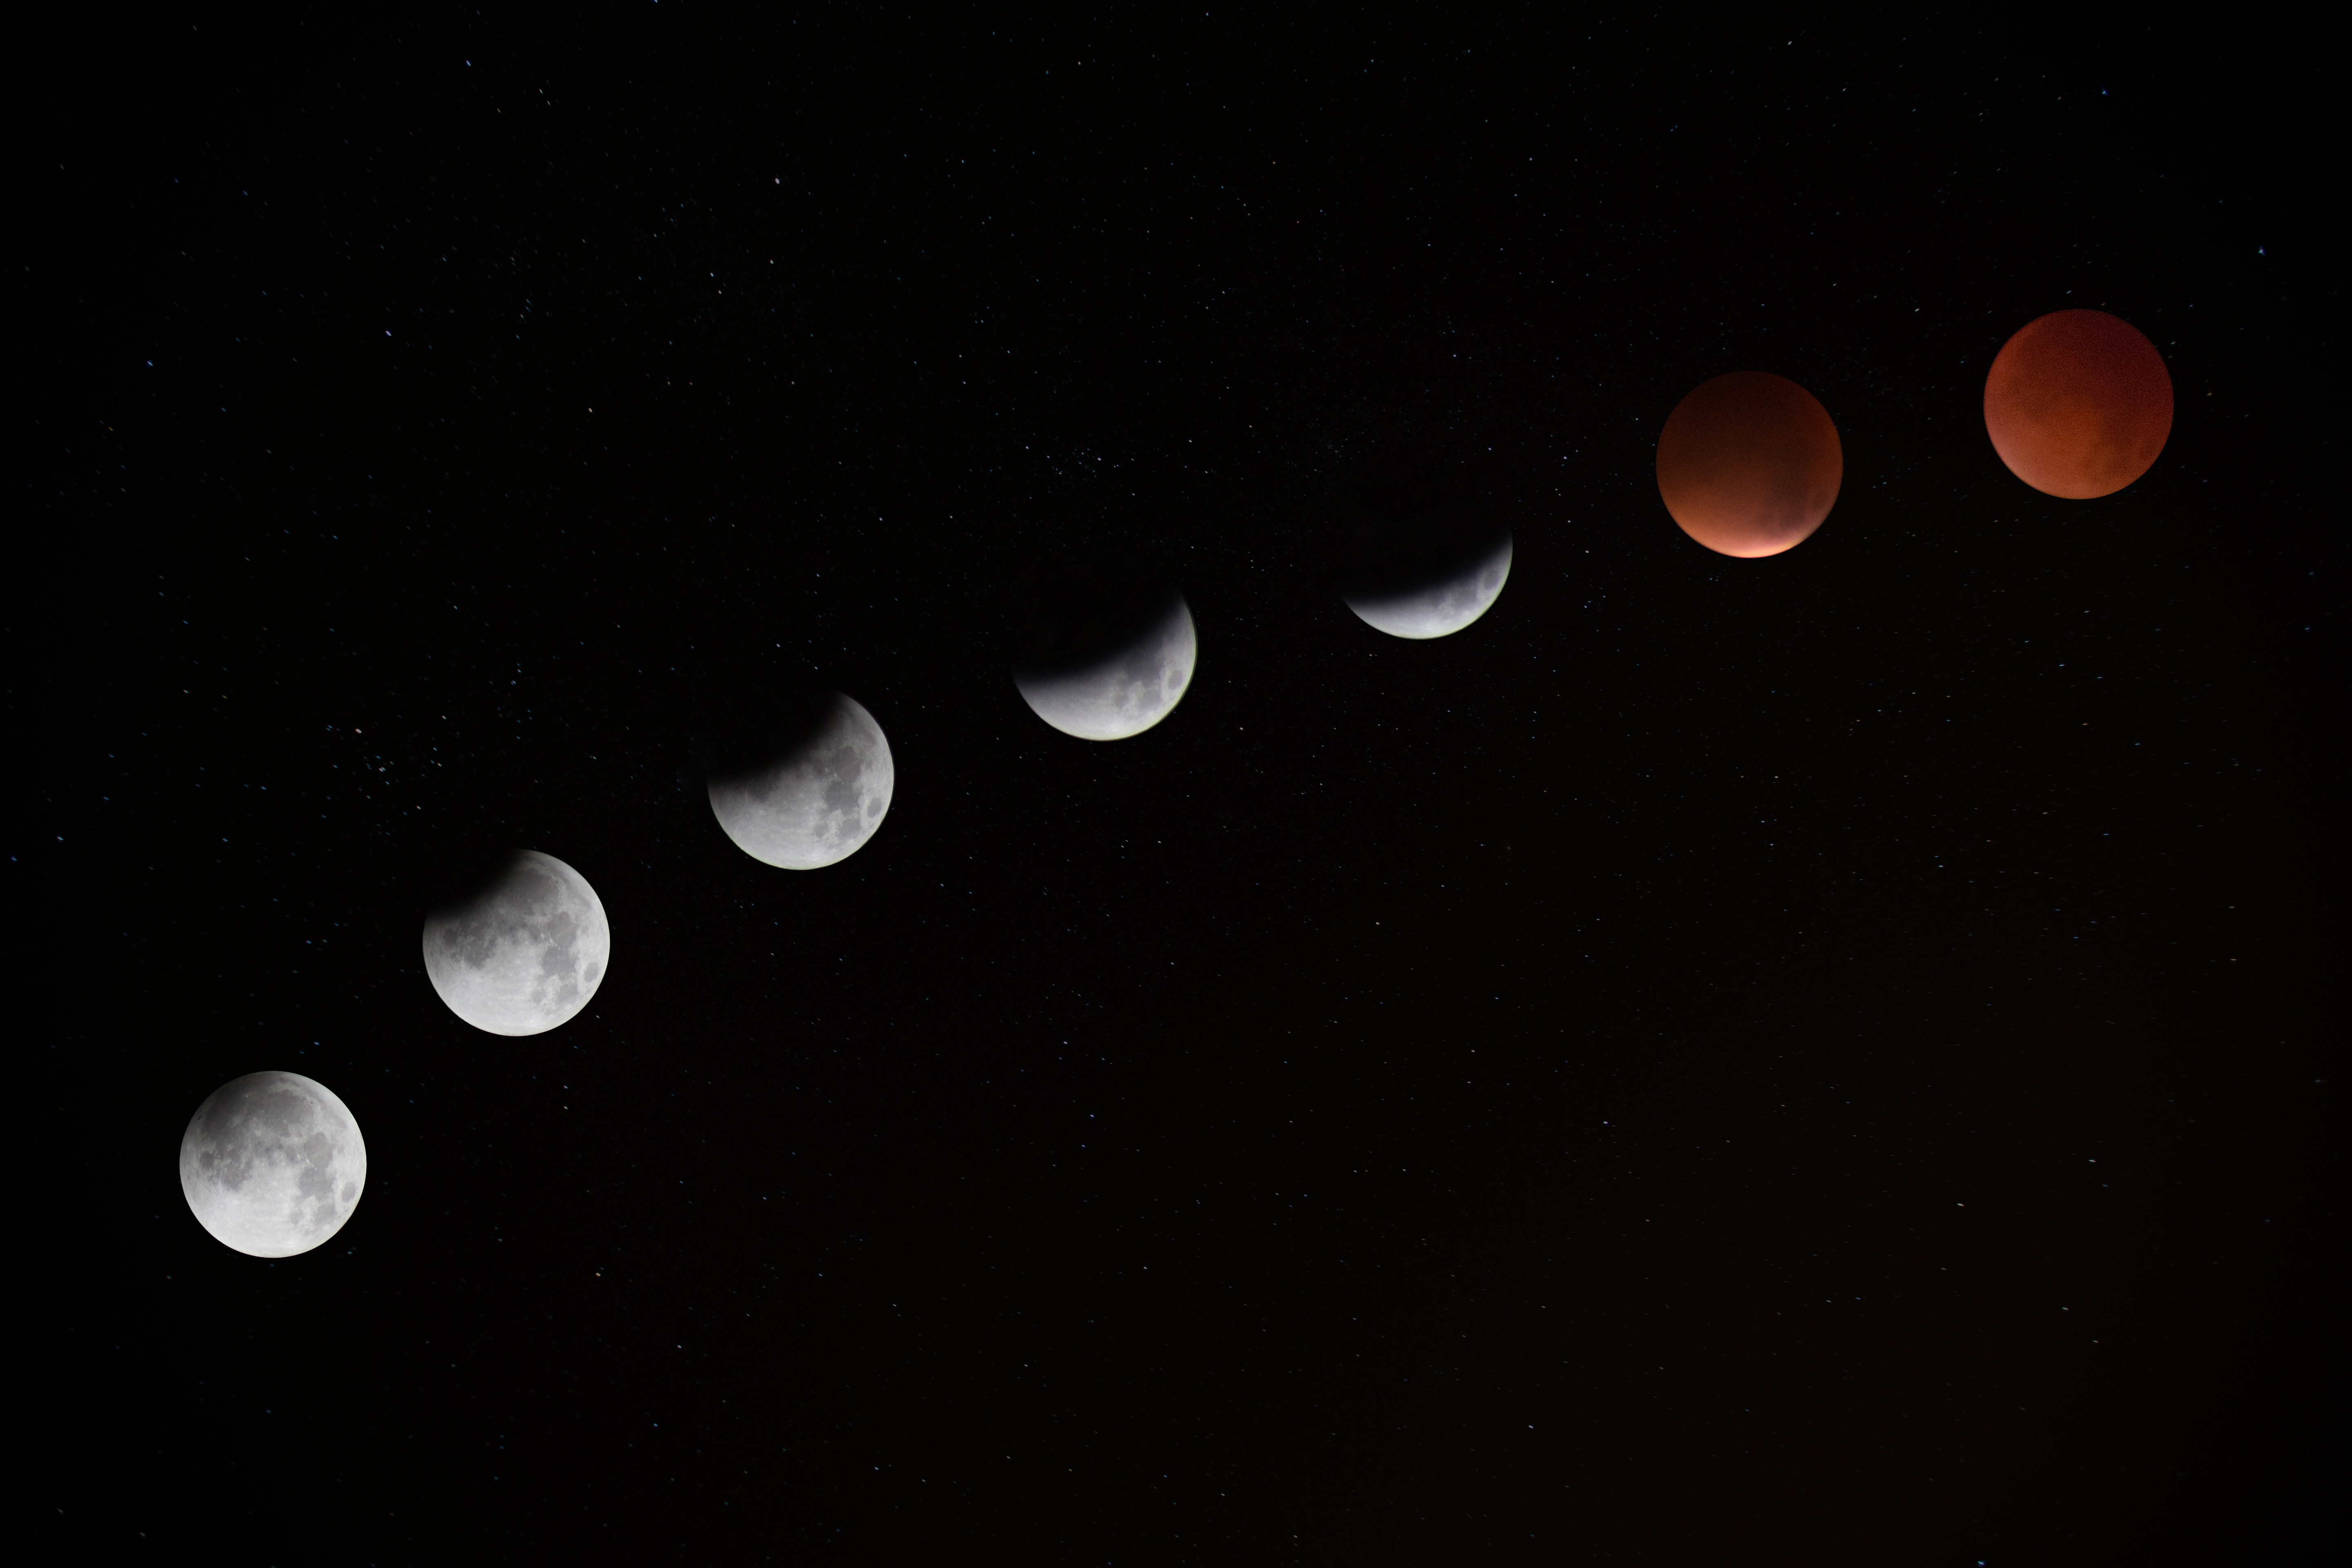 Image curtsey of Unsplash - Blood Super Moon Eclipse